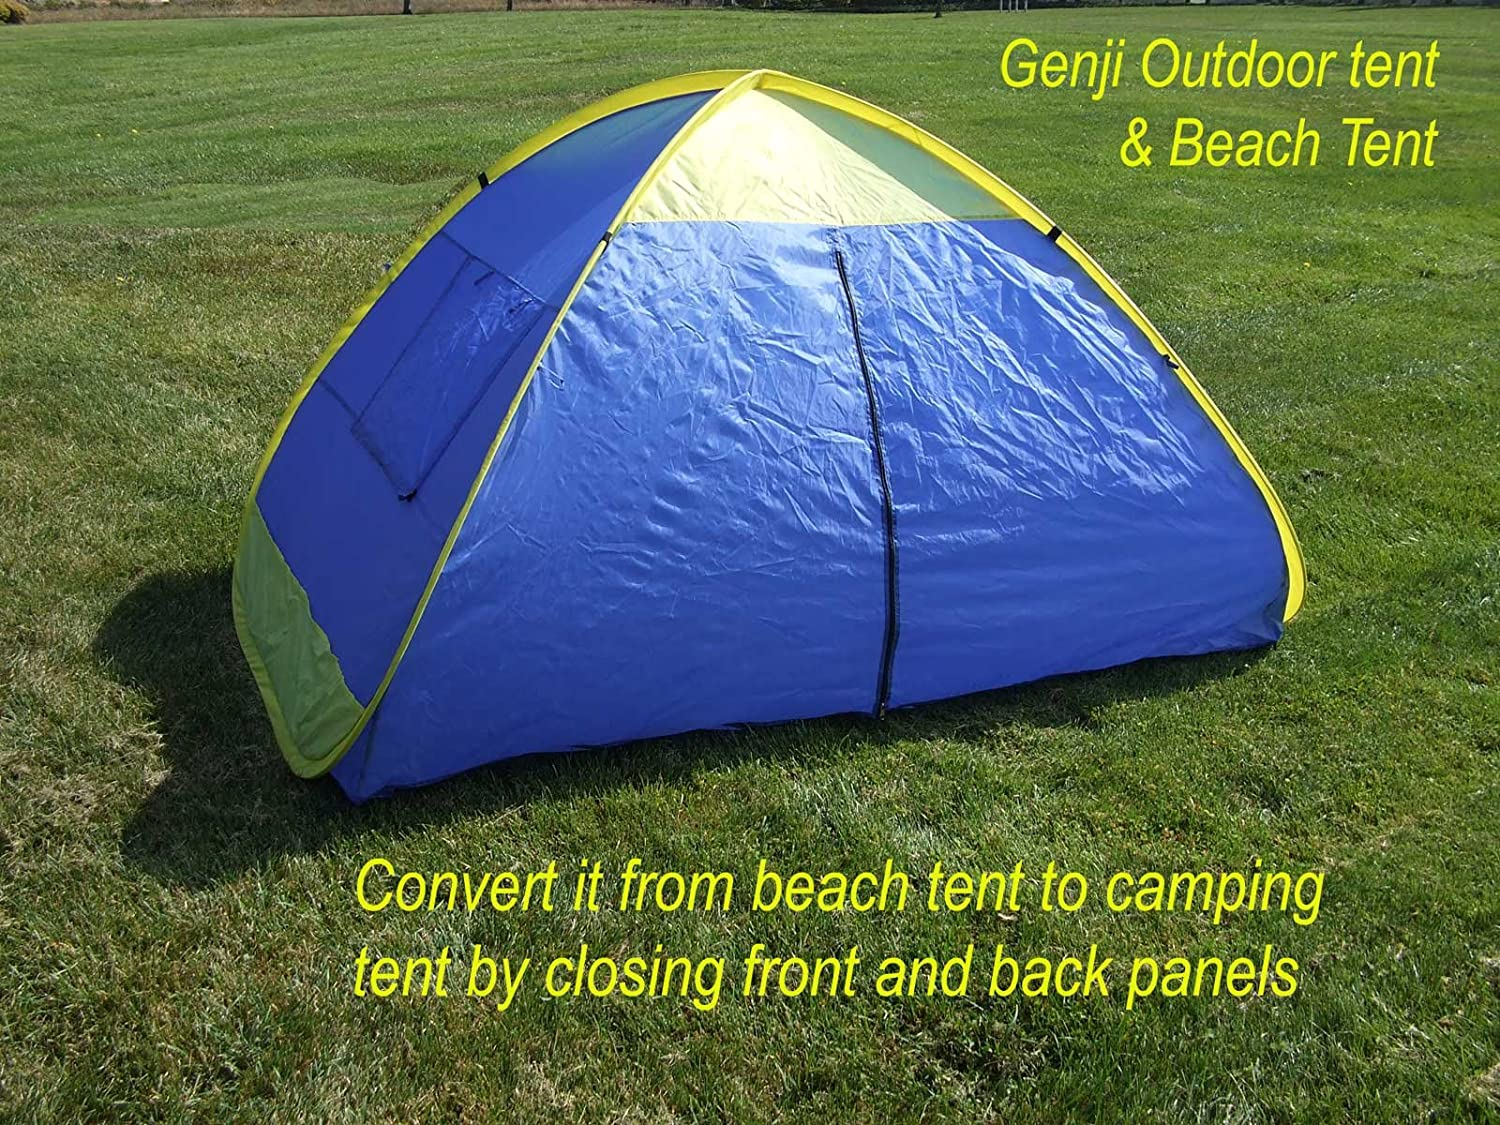 Amazon.com  Genji Sports Instant Outdoor and Beach Tent Blue/Yellow Trims One Size  Sports u0026 Outdoors & Amazon.com : Genji Sports Instant Outdoor and Beach Tent Blue ...